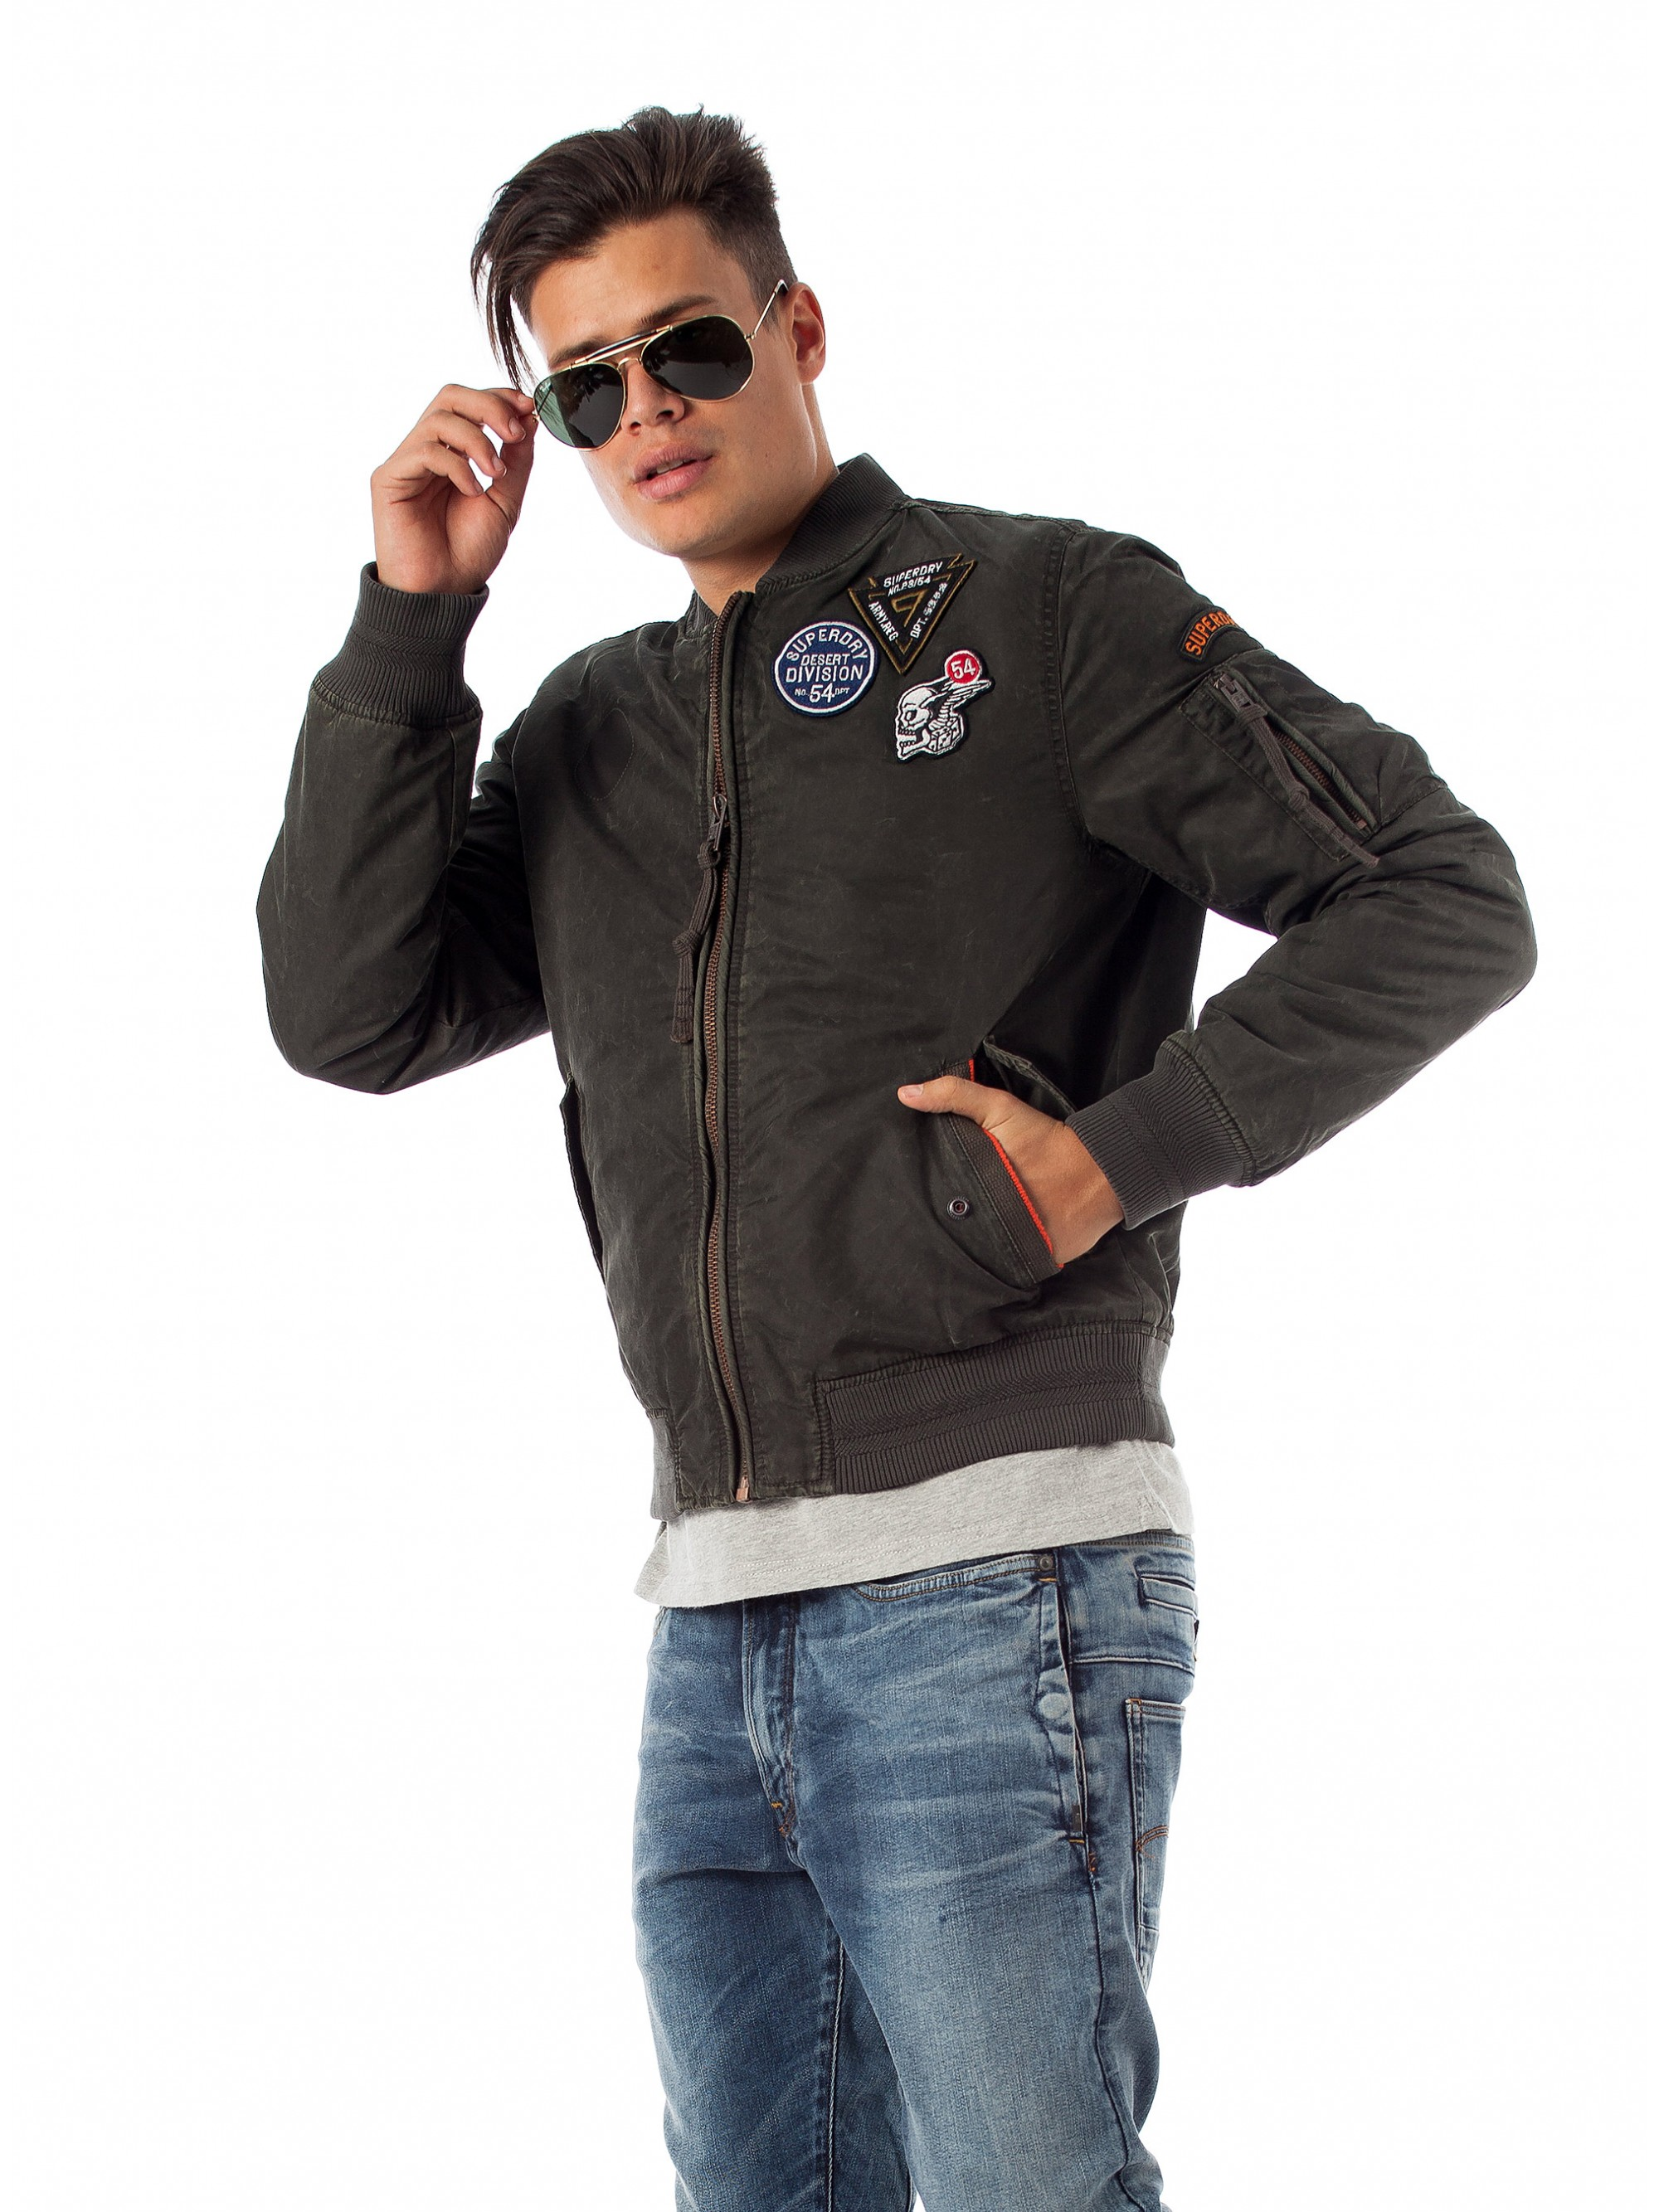 d735e9b88 Superdry Limited Edition Flight Bomber Jacket-Khaki - Jackets & Coats -  Tops - Men